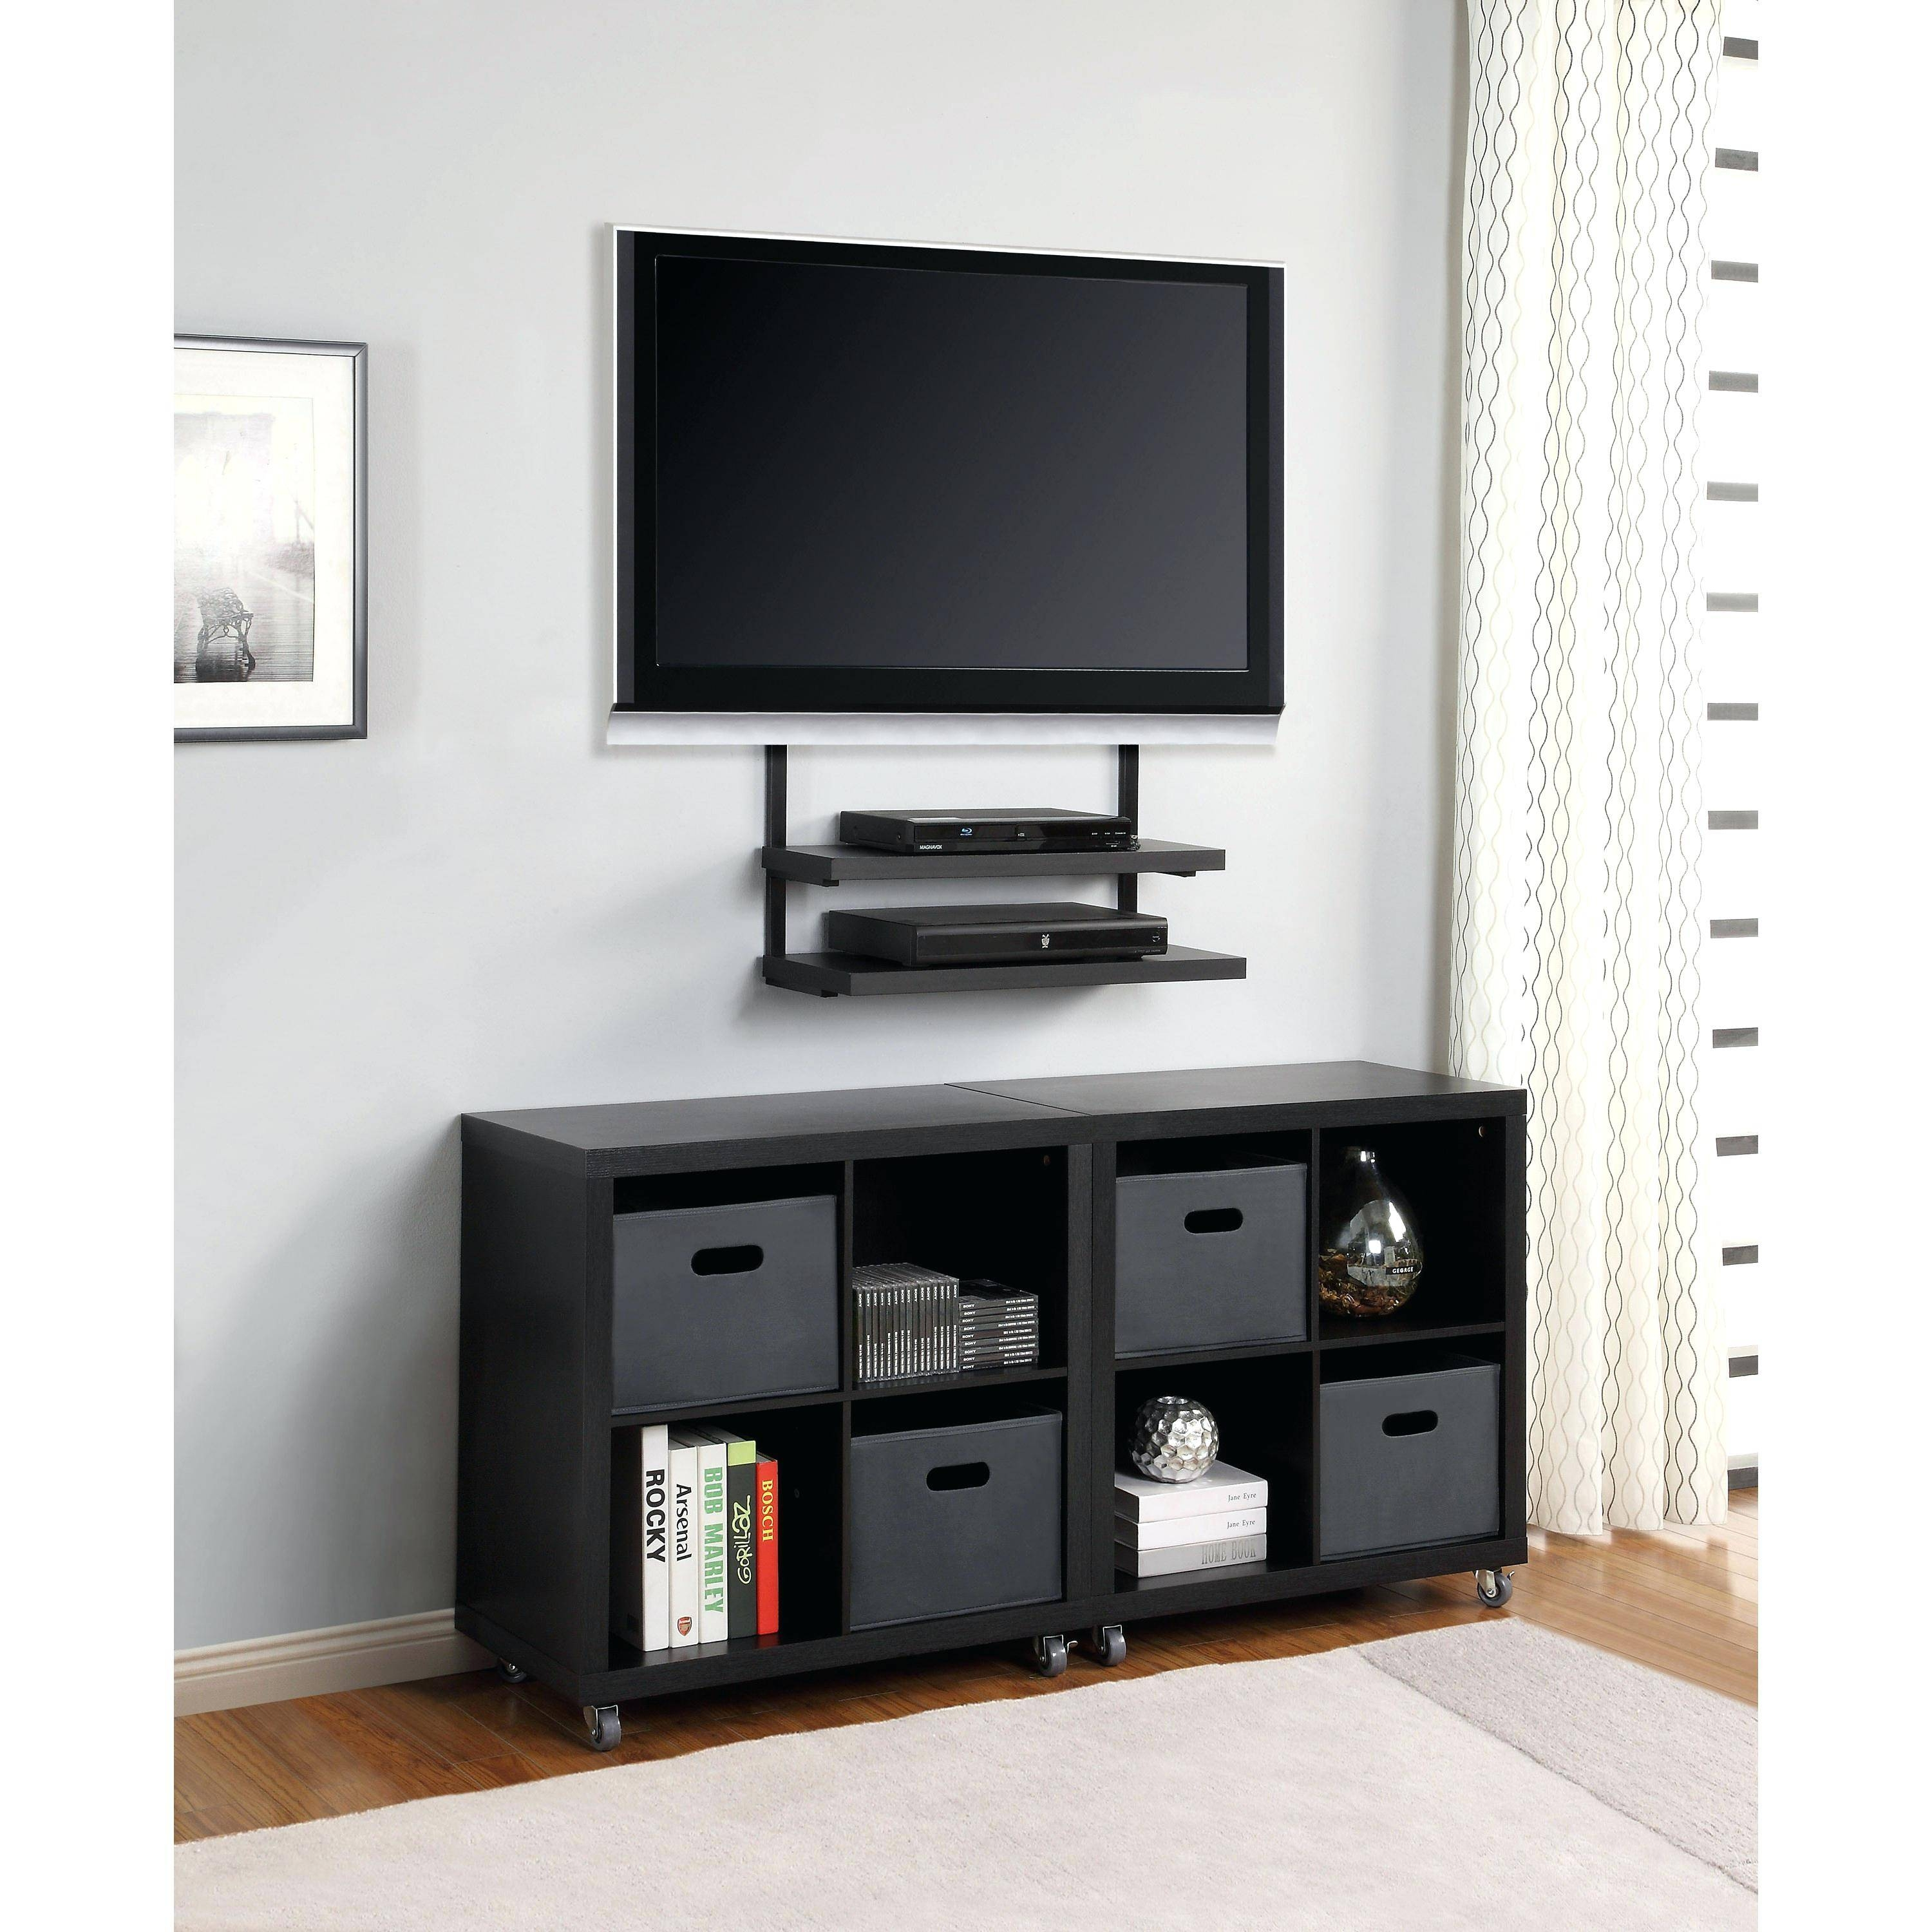 Tv Stand : Corner Wall Tv Stand Mount 1000 Ideas About Tv Corner Within Unique Corner Tv Stands (View 4 of 15)